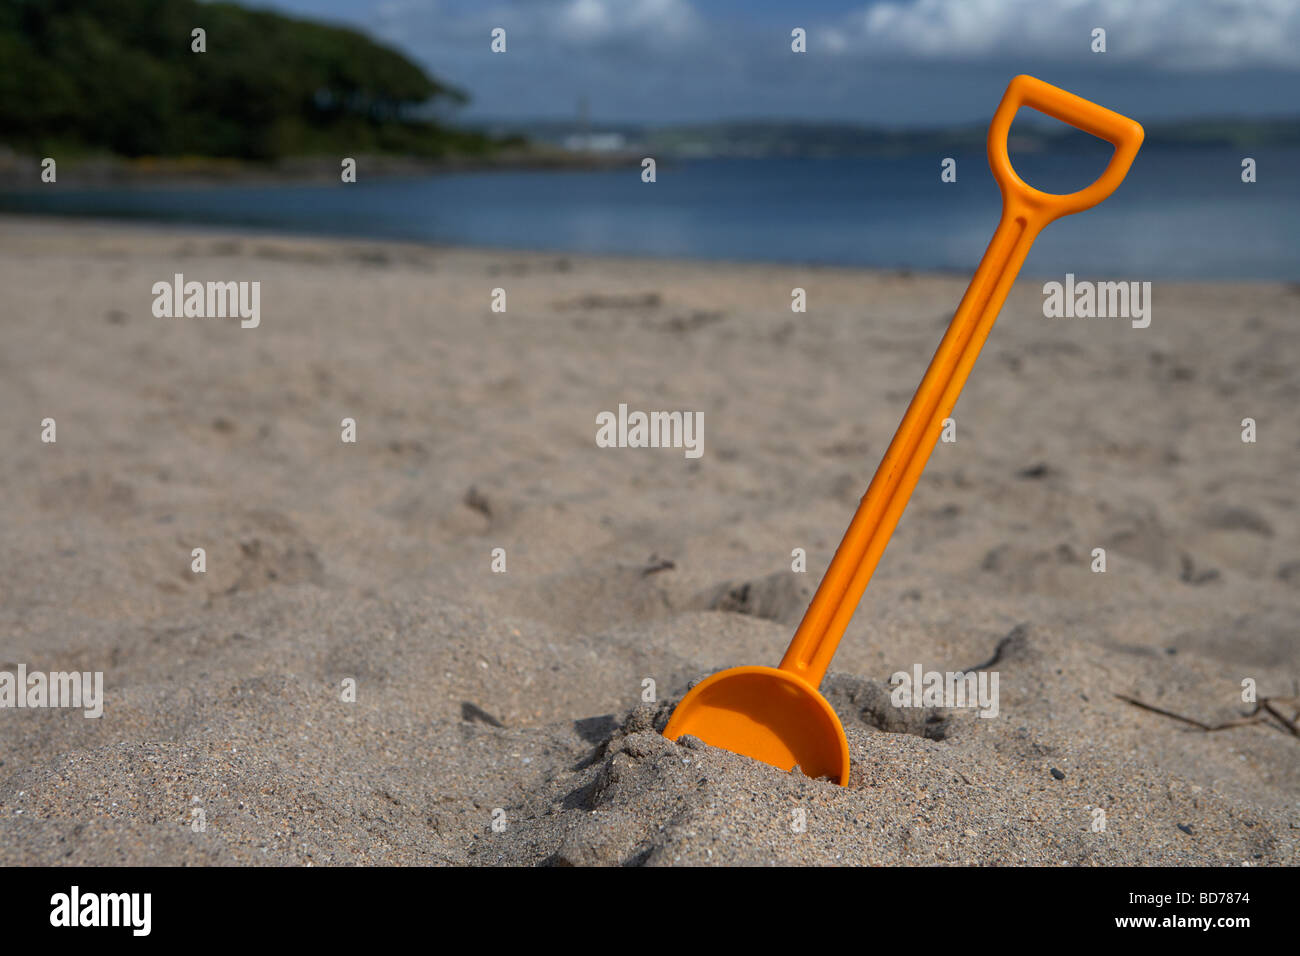 childs toy plastic spade stuck into the sand on a beach in the uk - Stock Image